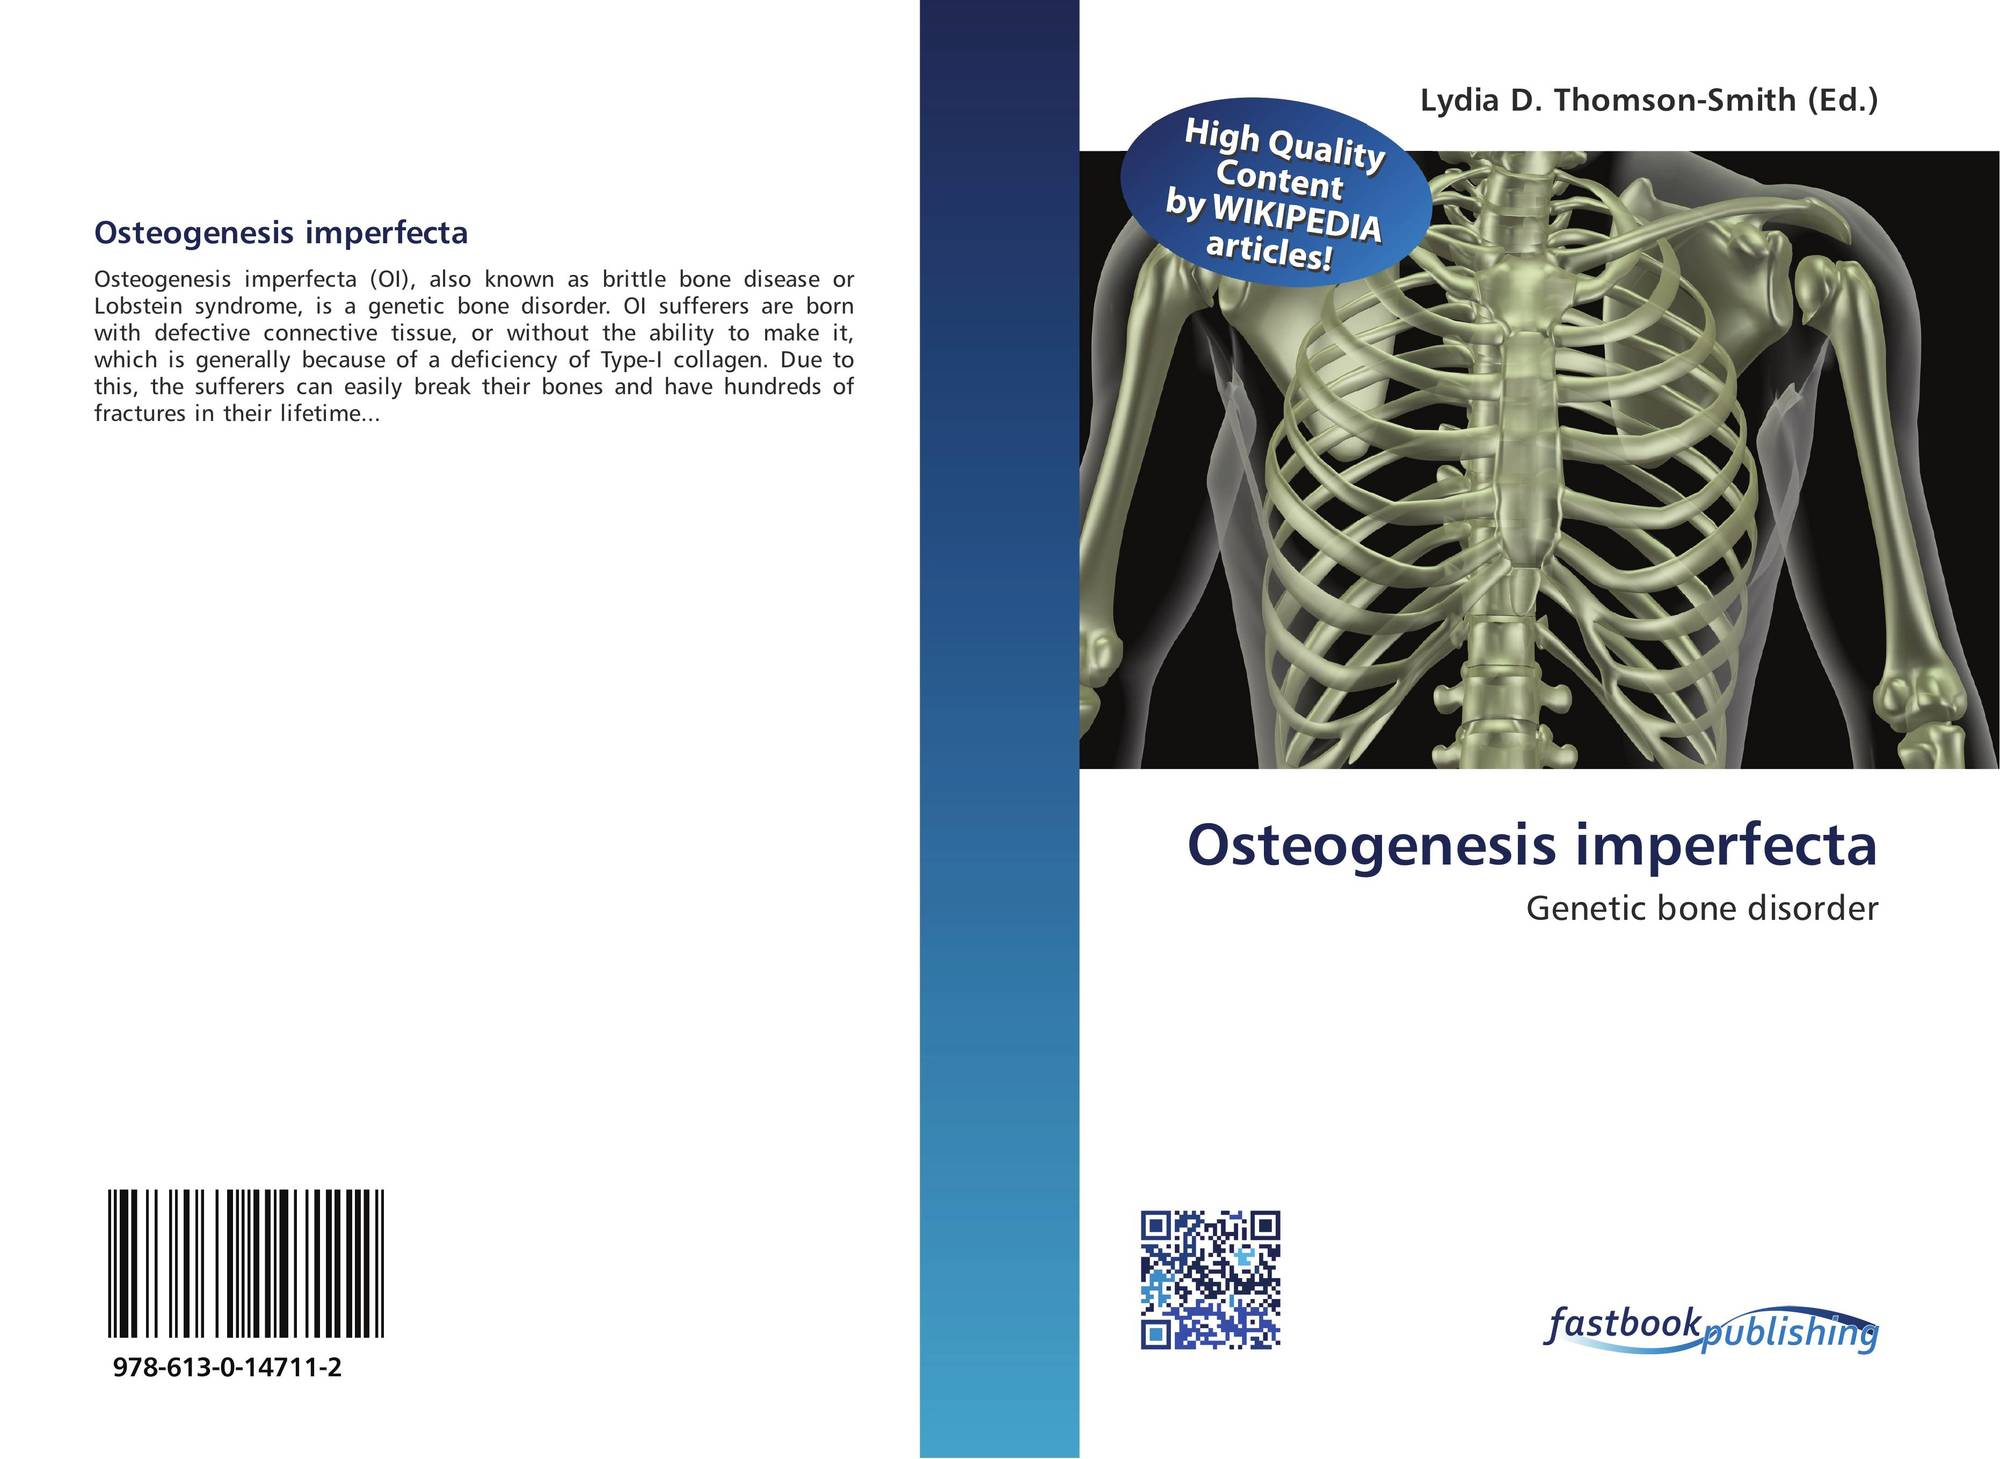 an in dept overview of the osteogenesi imperfecta oi genetic disorder Osteogenesis imperfecta - an overview akku sara jacob1 2reader, dept of oral pathology generalized connective tissue disorder characterized by severe.